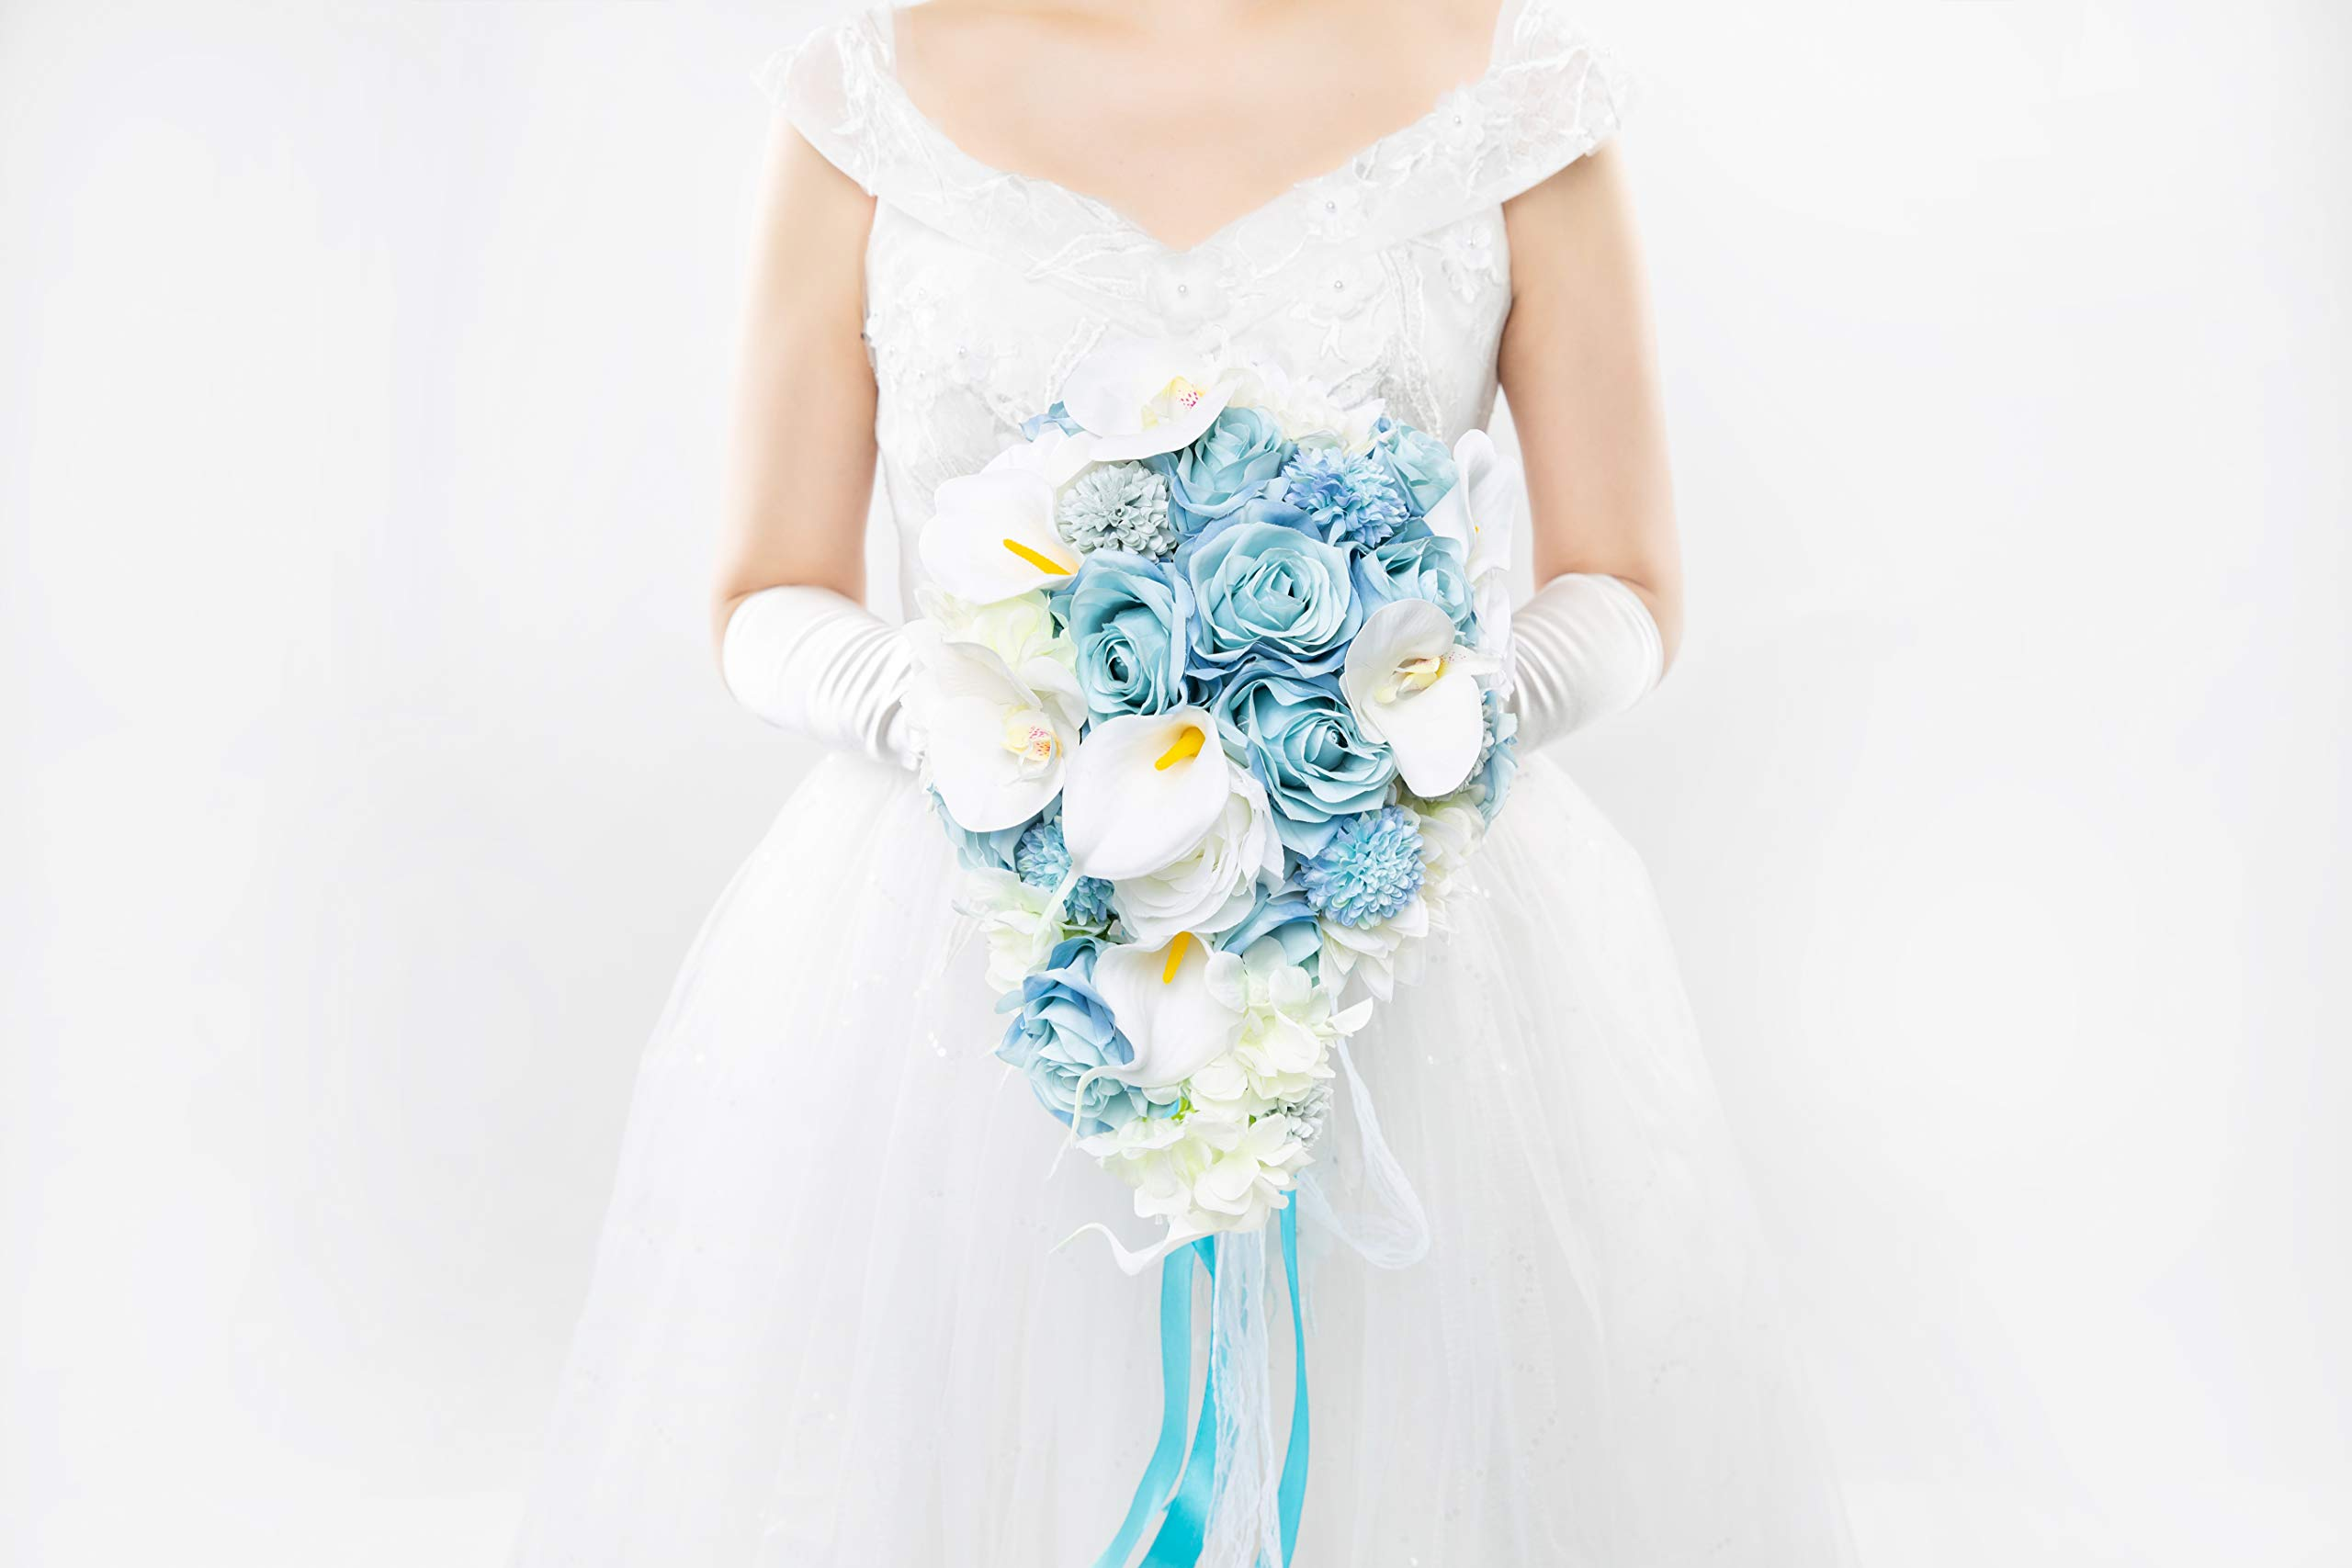 Abbie Home Light Blue Calla Lily White Dahlia Cascading Bridal Bouquets - Silk Flowers for Beach Wedding with Ribbon and Lace Décor (A Cascading Bouquet) by Abbie Home